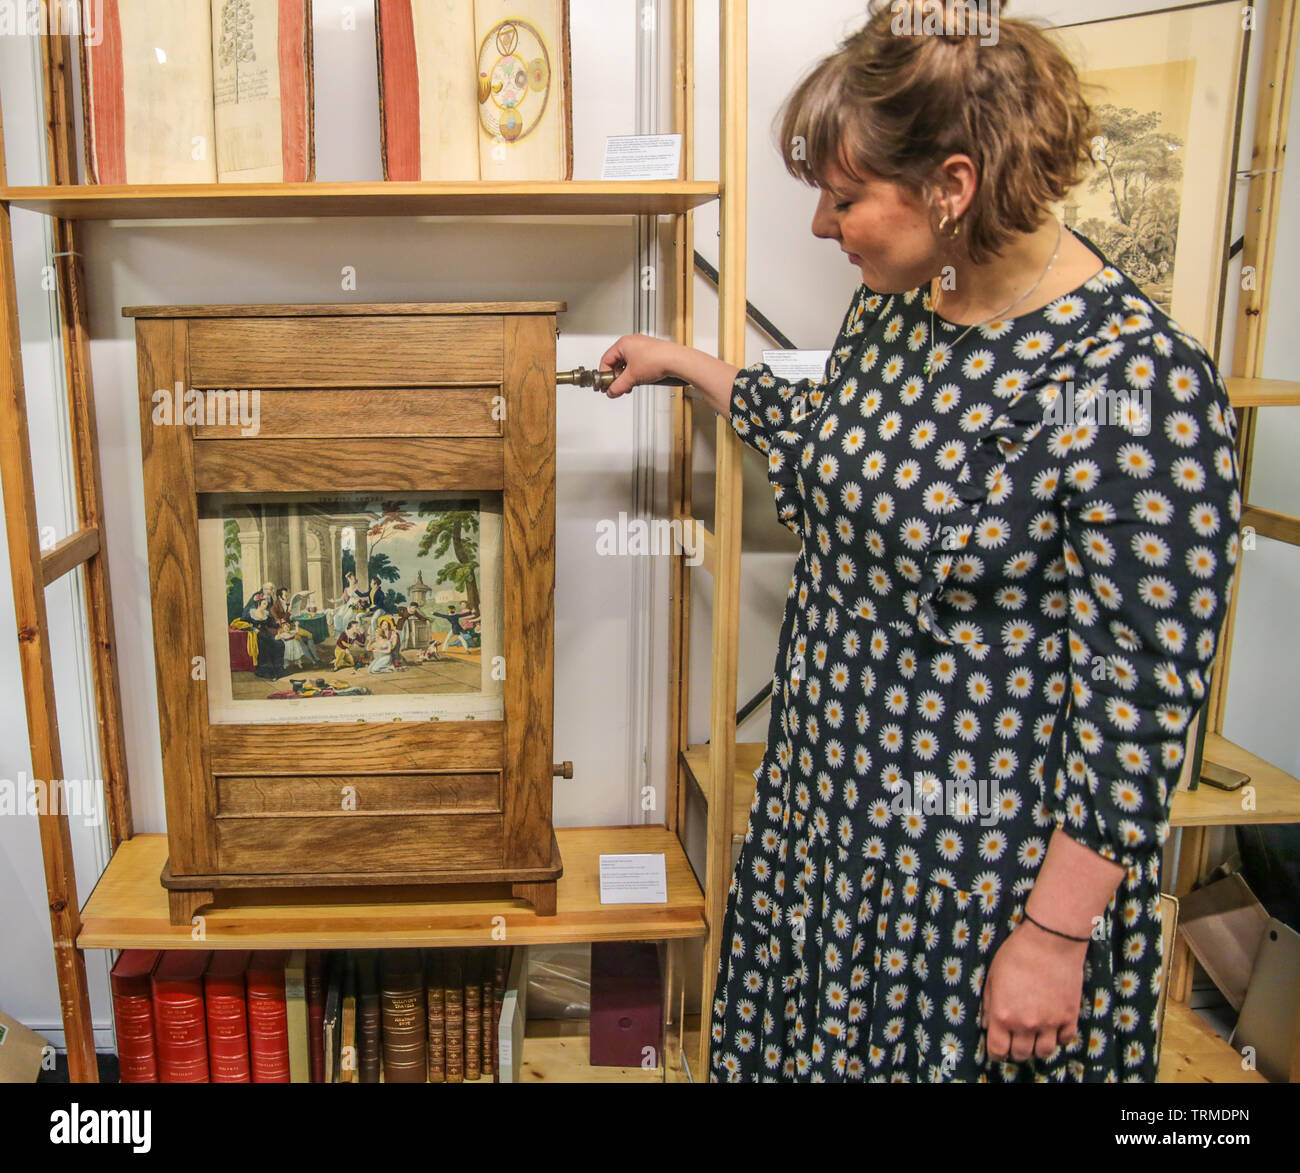 London, UK. 09th June, 2019.  The London's First Rare Book Fair, Benjamin Spaceman rare books offering one of the few known Rudiment Box in the world, originally owned by Darton and Sons from London .circa 1840.The Darton Rudiment Box was an educational tool for children in schools and nursery, its use was recorded in schools in England and Ireland from 1830's onwards. The basic design consisted of prints pasted on linen or paper and attached to two rollers. Credit: Paul Quezada-Neiman/Alamy Live News Stock Photo